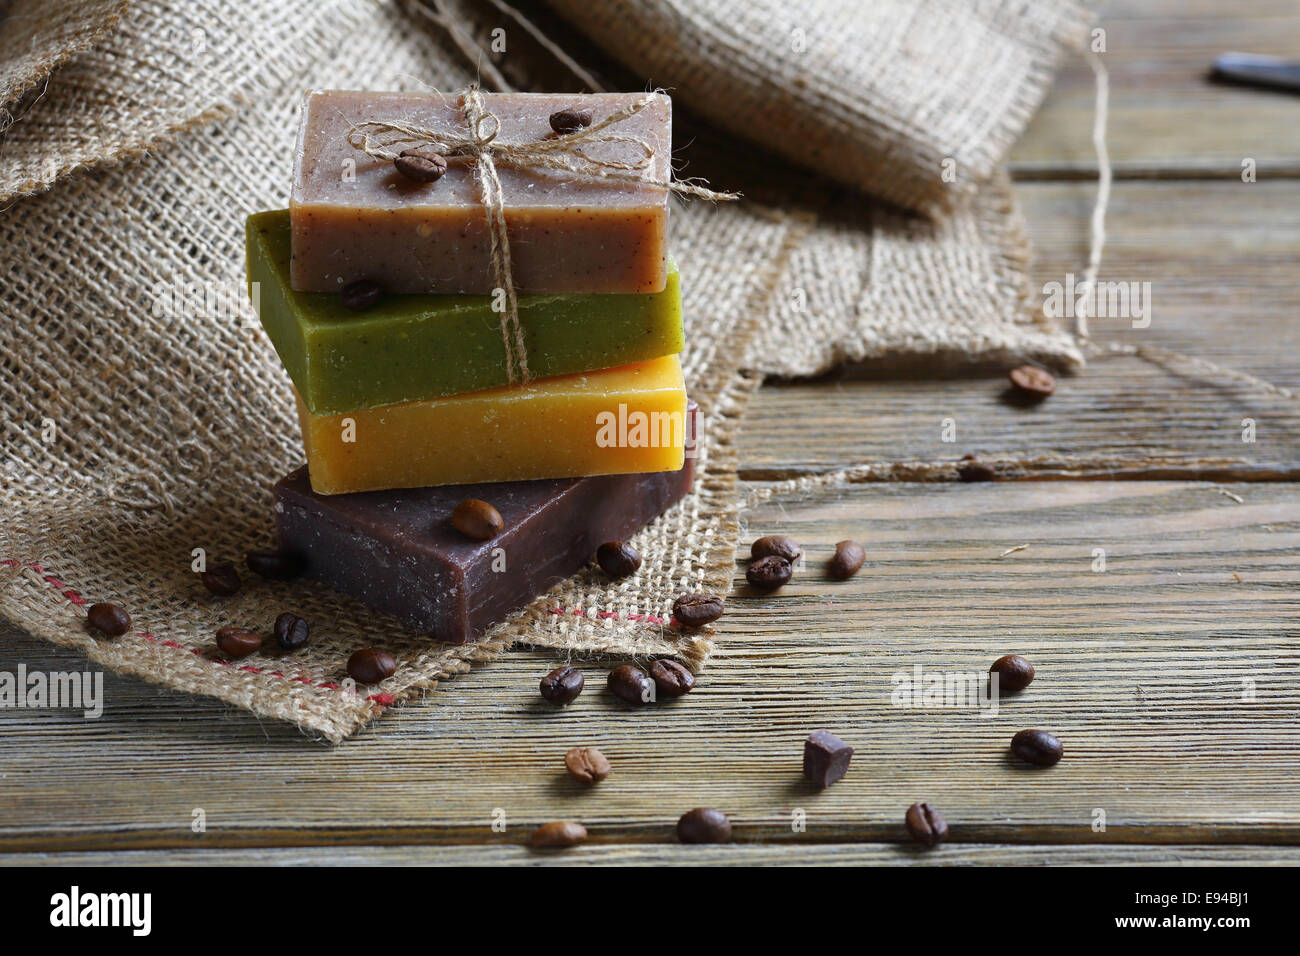 Handmade soap with roasted coffee beans, toiletries on sacking - Stock Image